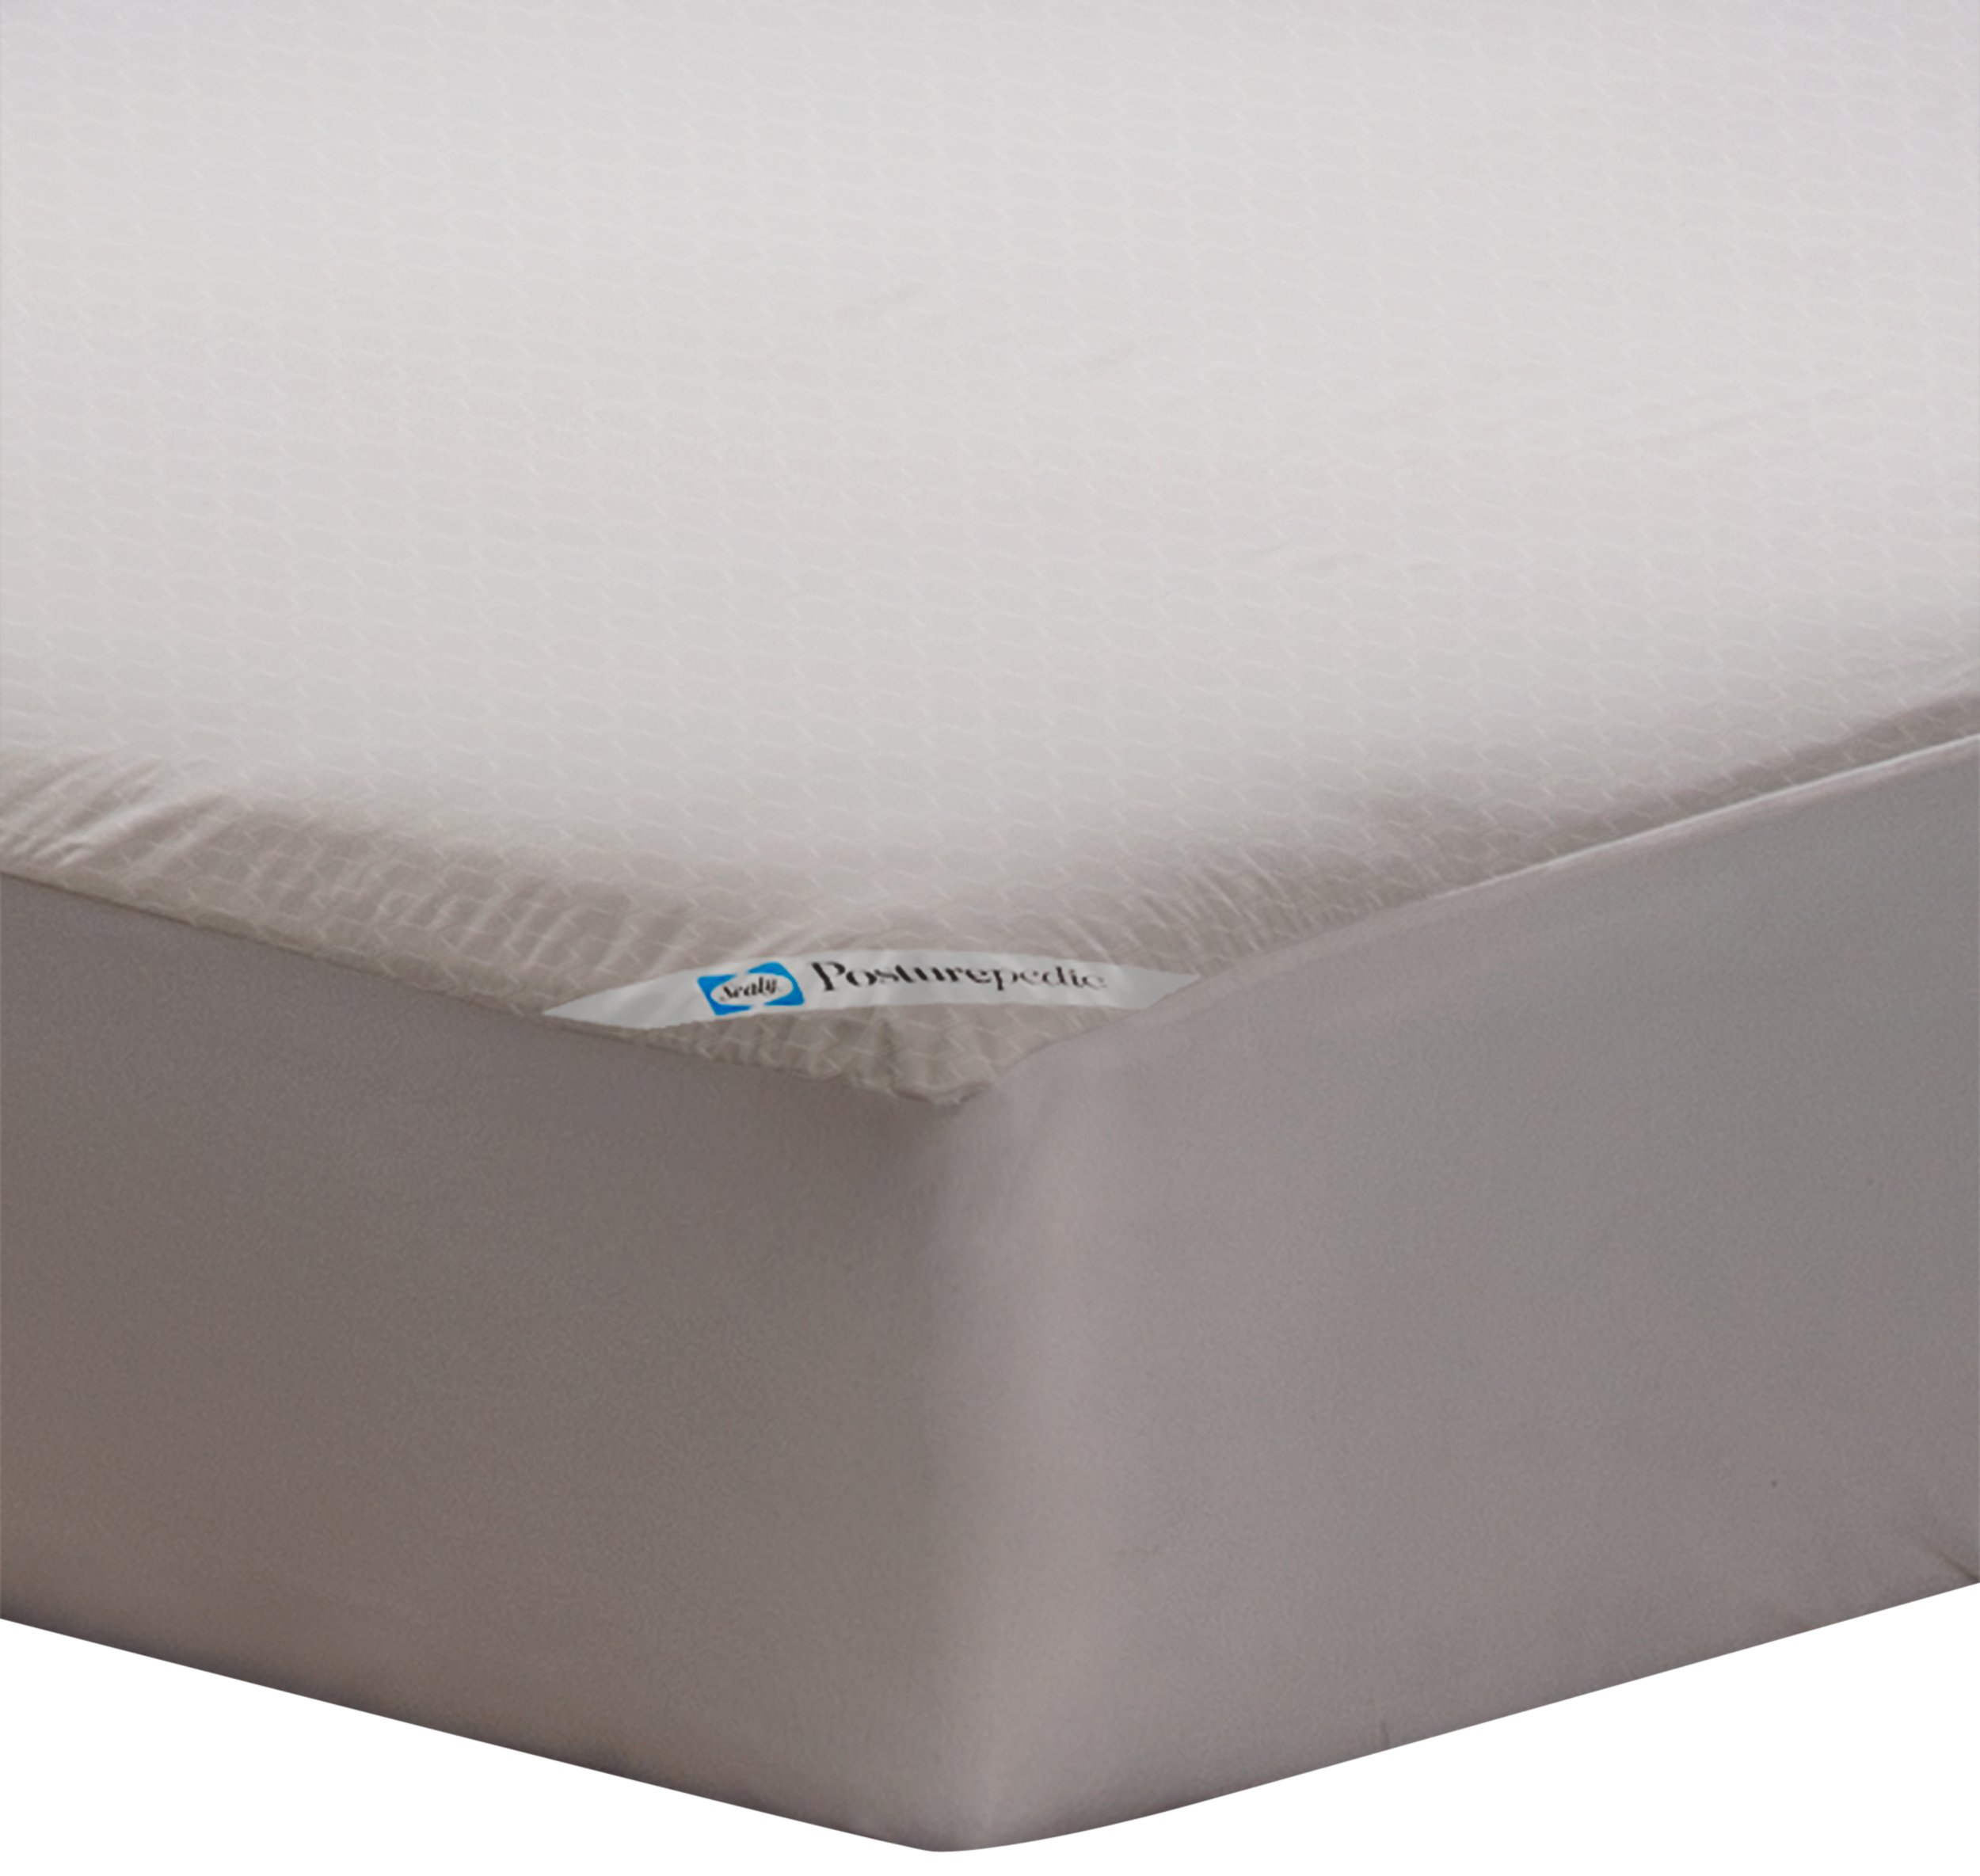 Sealy Posturepedic Allergy Protection Zippered Mattress Protector by Sealy